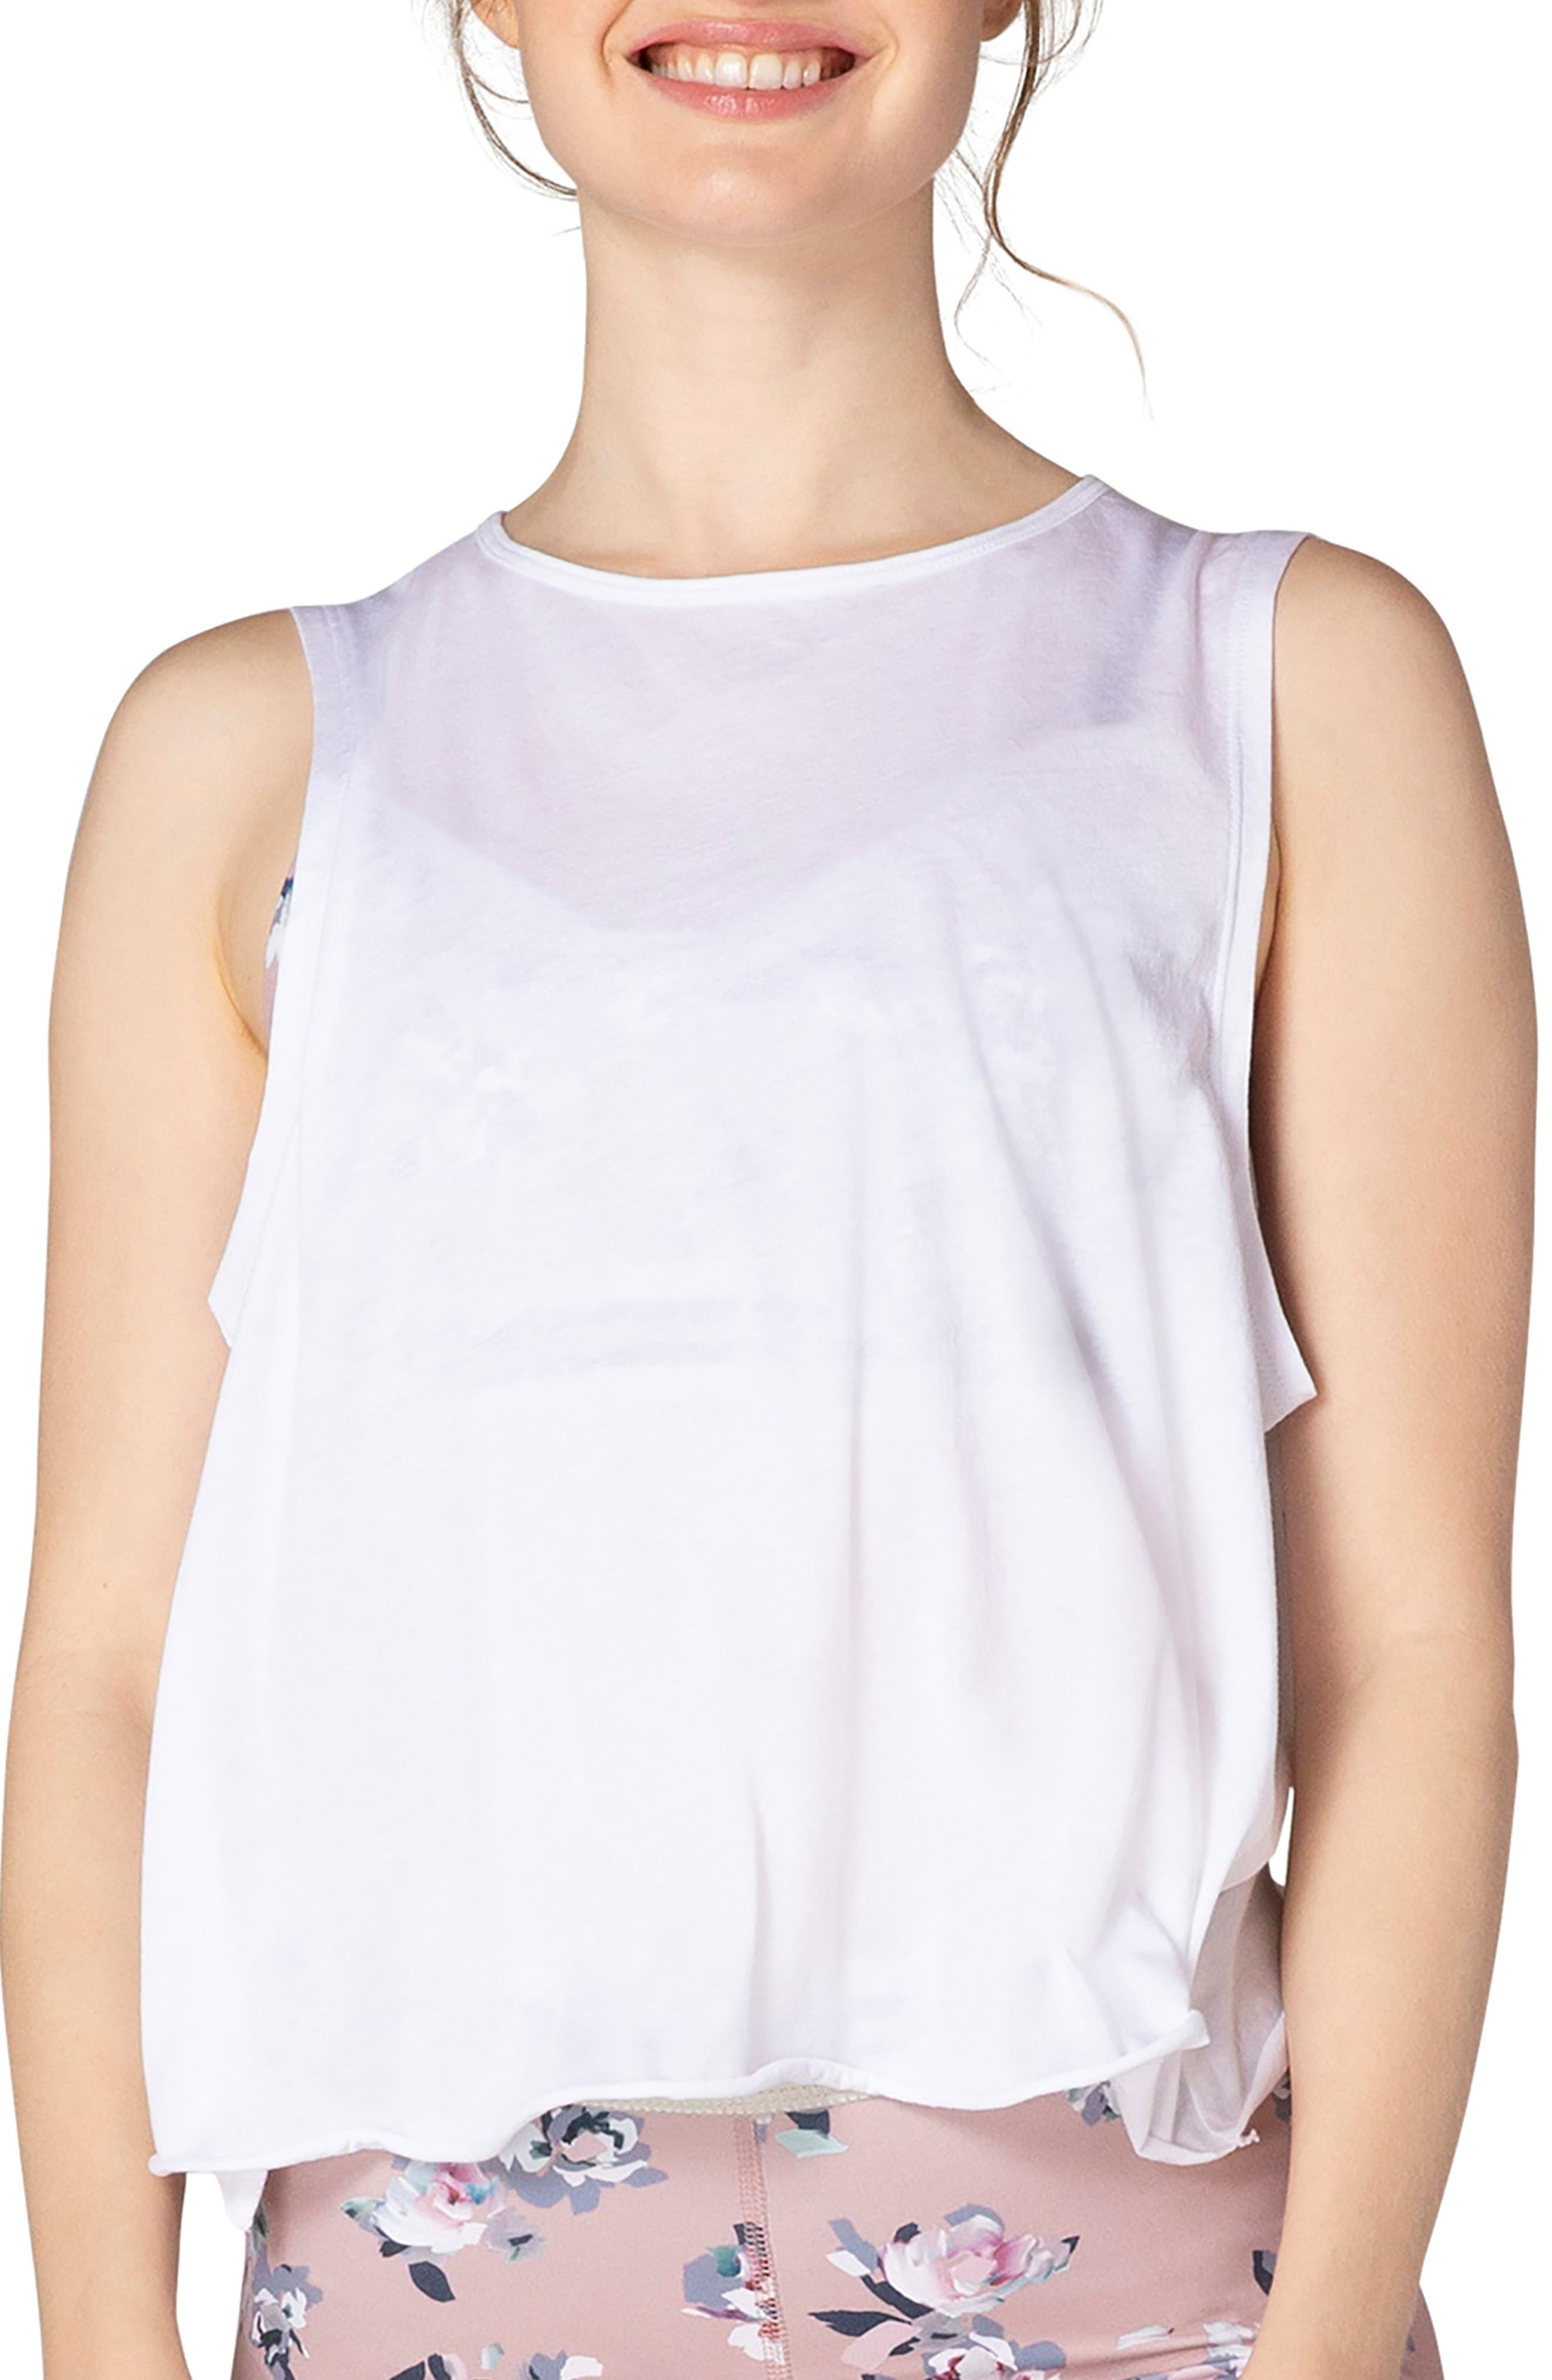 All About It Crop Tank Top,                             Main thumbnail 1, color,                             101